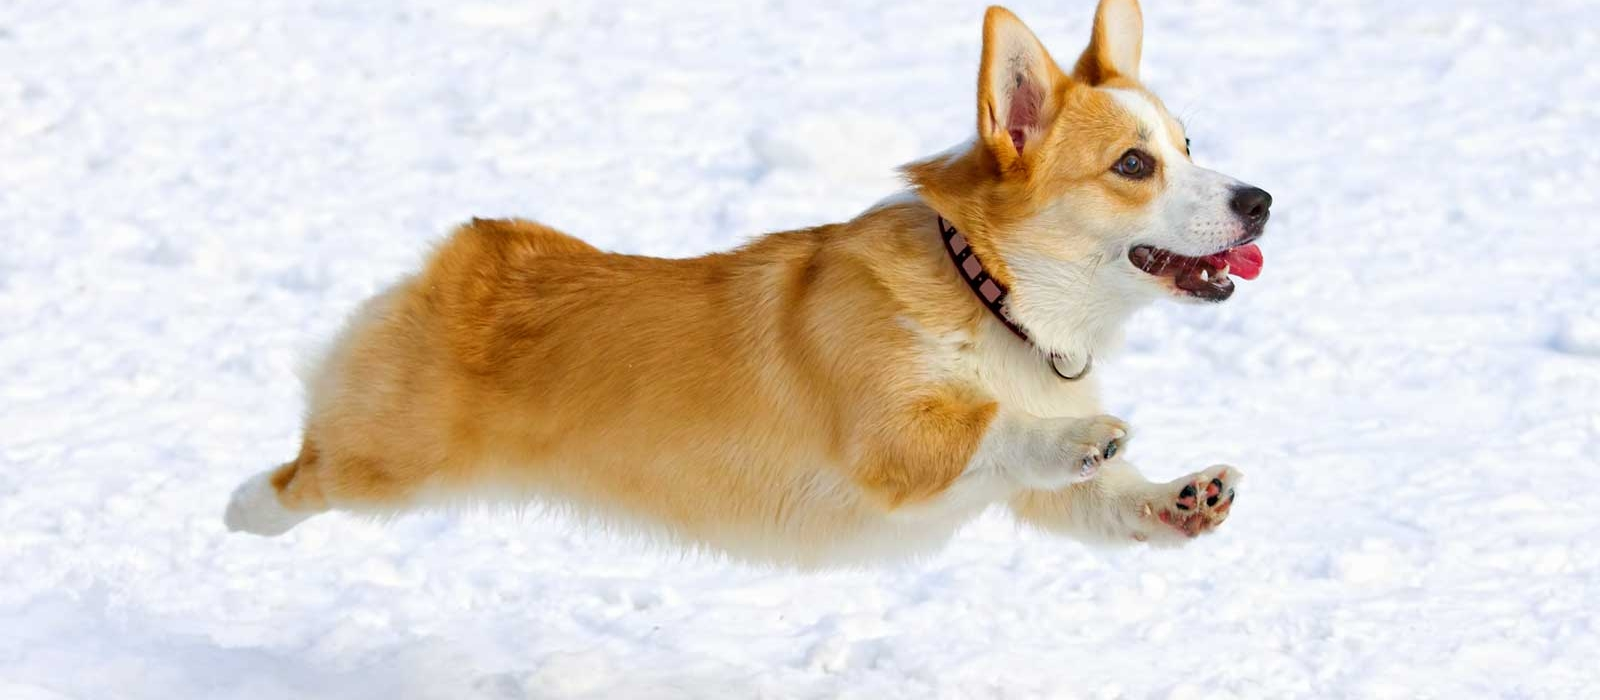 Some methods to help train Corgi dogs become easier